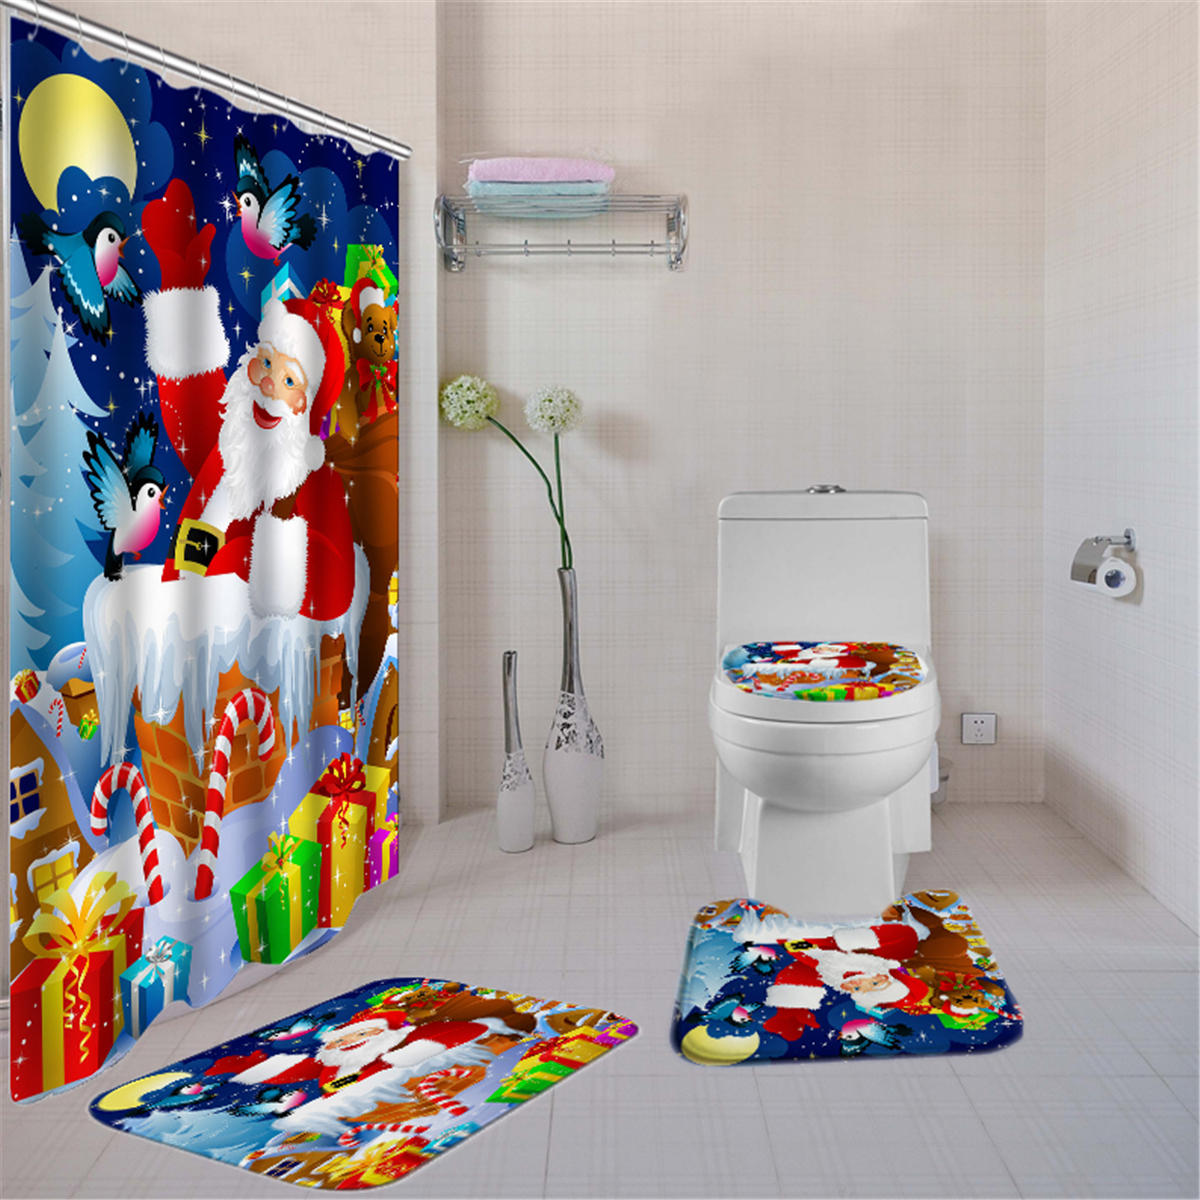 180X180 Santa Claus Christmas Gifts Shower Curtain With Hooks Waterproof Bathroom Carpet Set COD